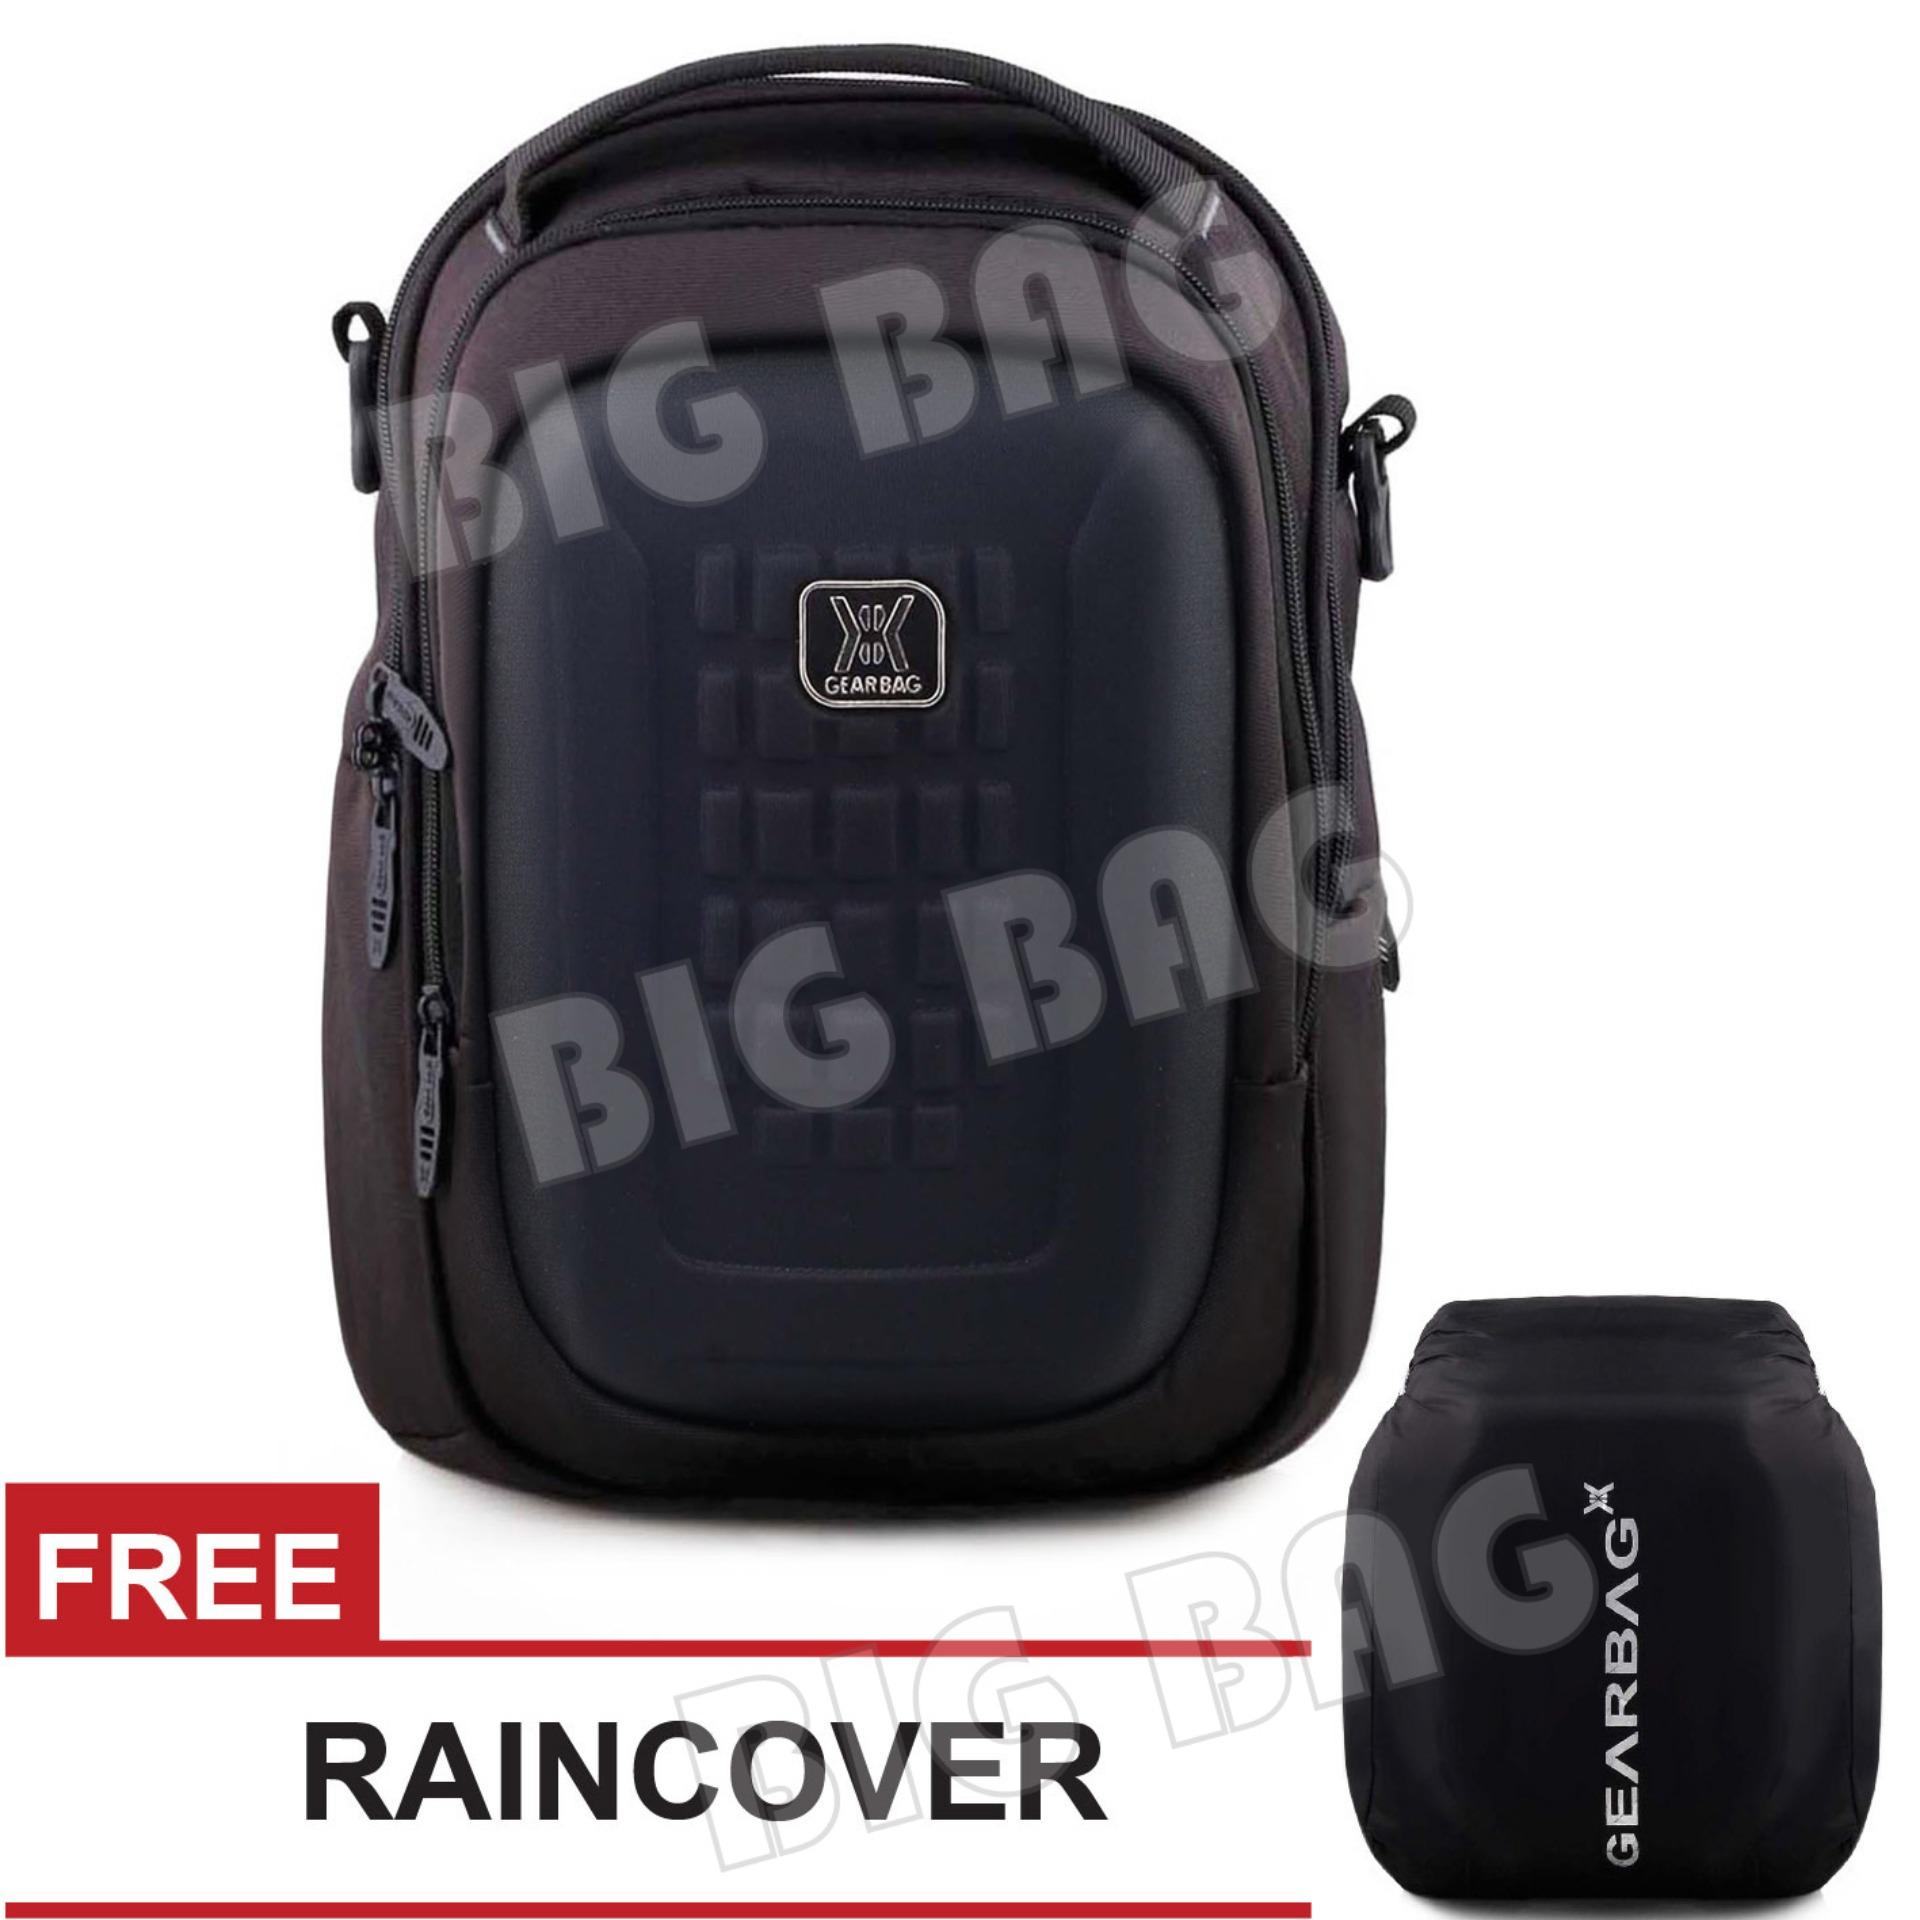 ... Coast Guard Source · Tas Selempang Gear Bag Jastone Kraken Shell SQUARE EMBOSS Slingbag FREE Raincover Black Tas